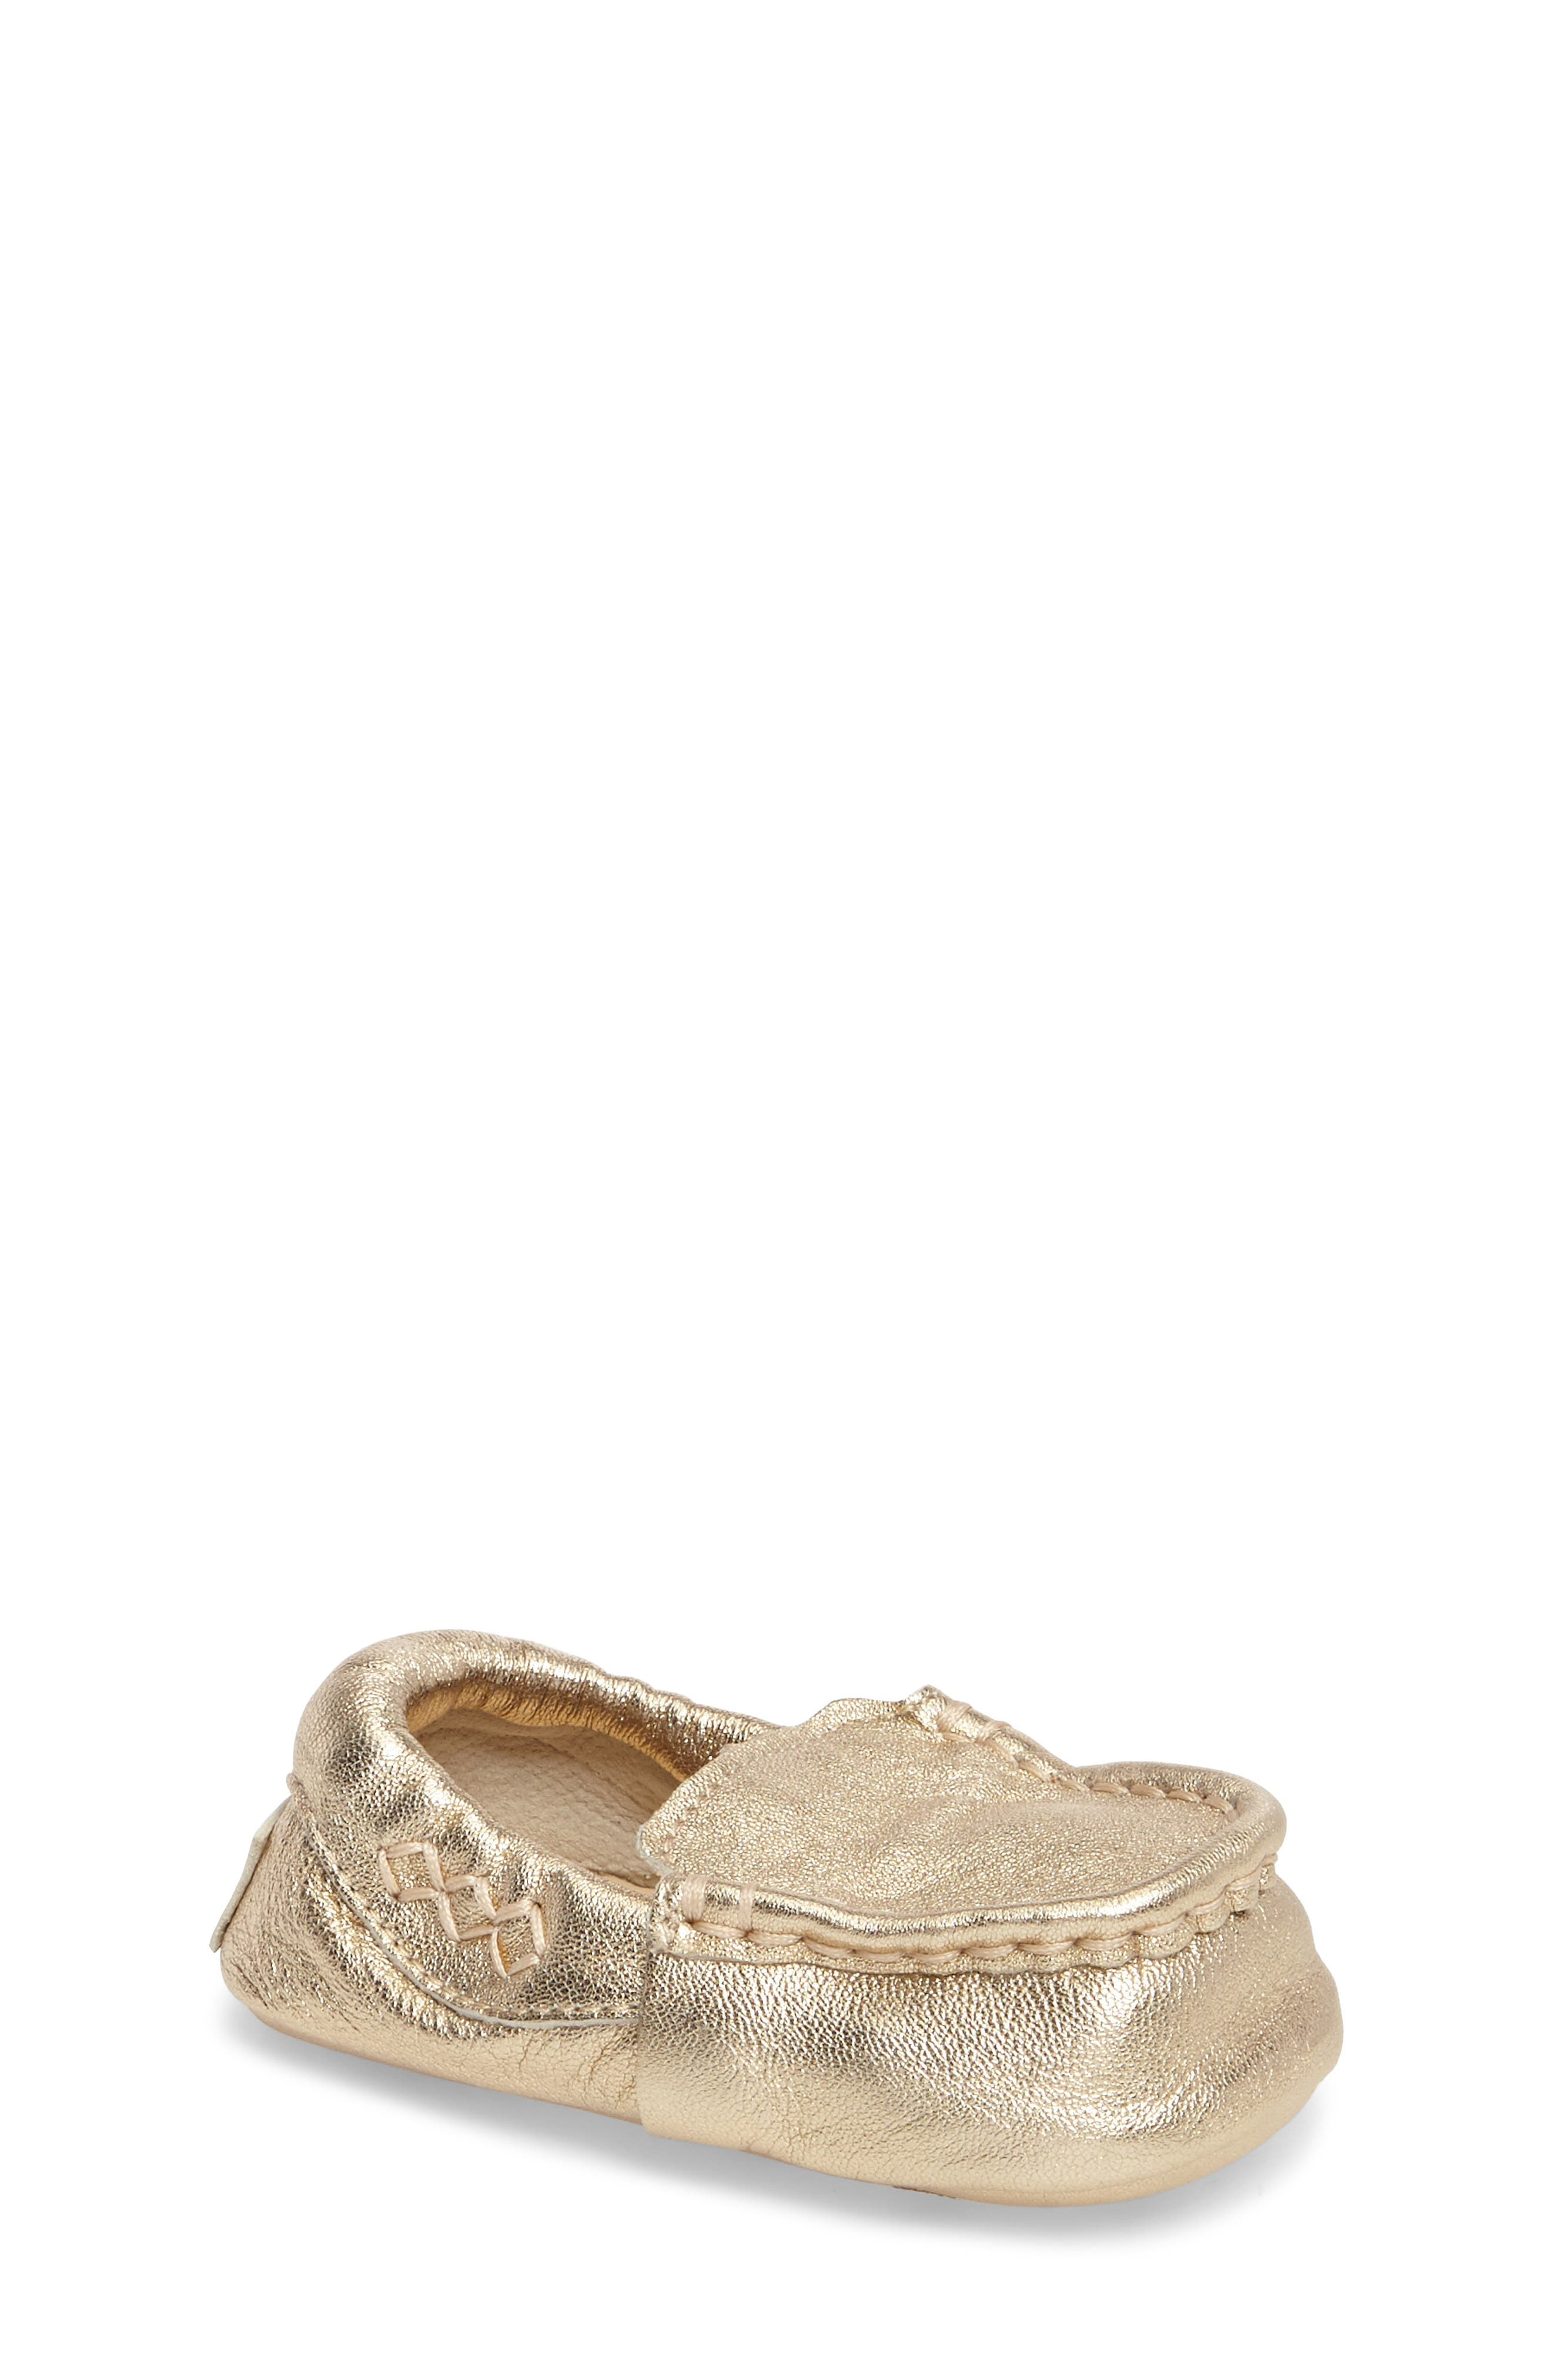 Sivia Metallic Loafer,                             Main thumbnail 1, color,                             Gold